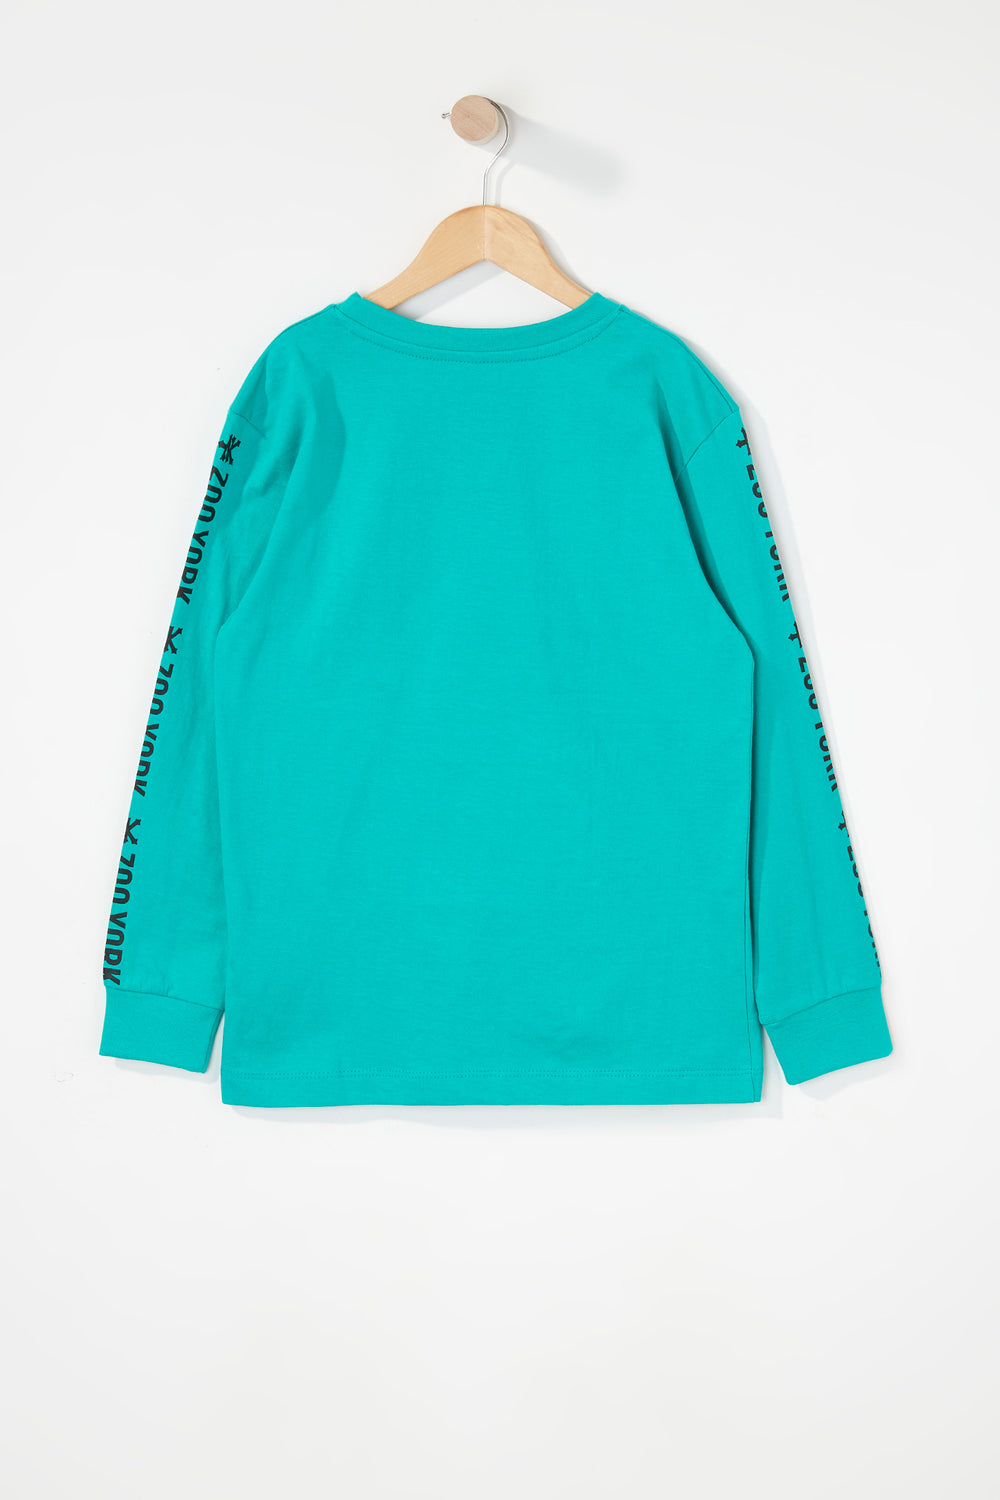 Zoo York Boys Classic Logo Long Sleeve Shirt Turquoise